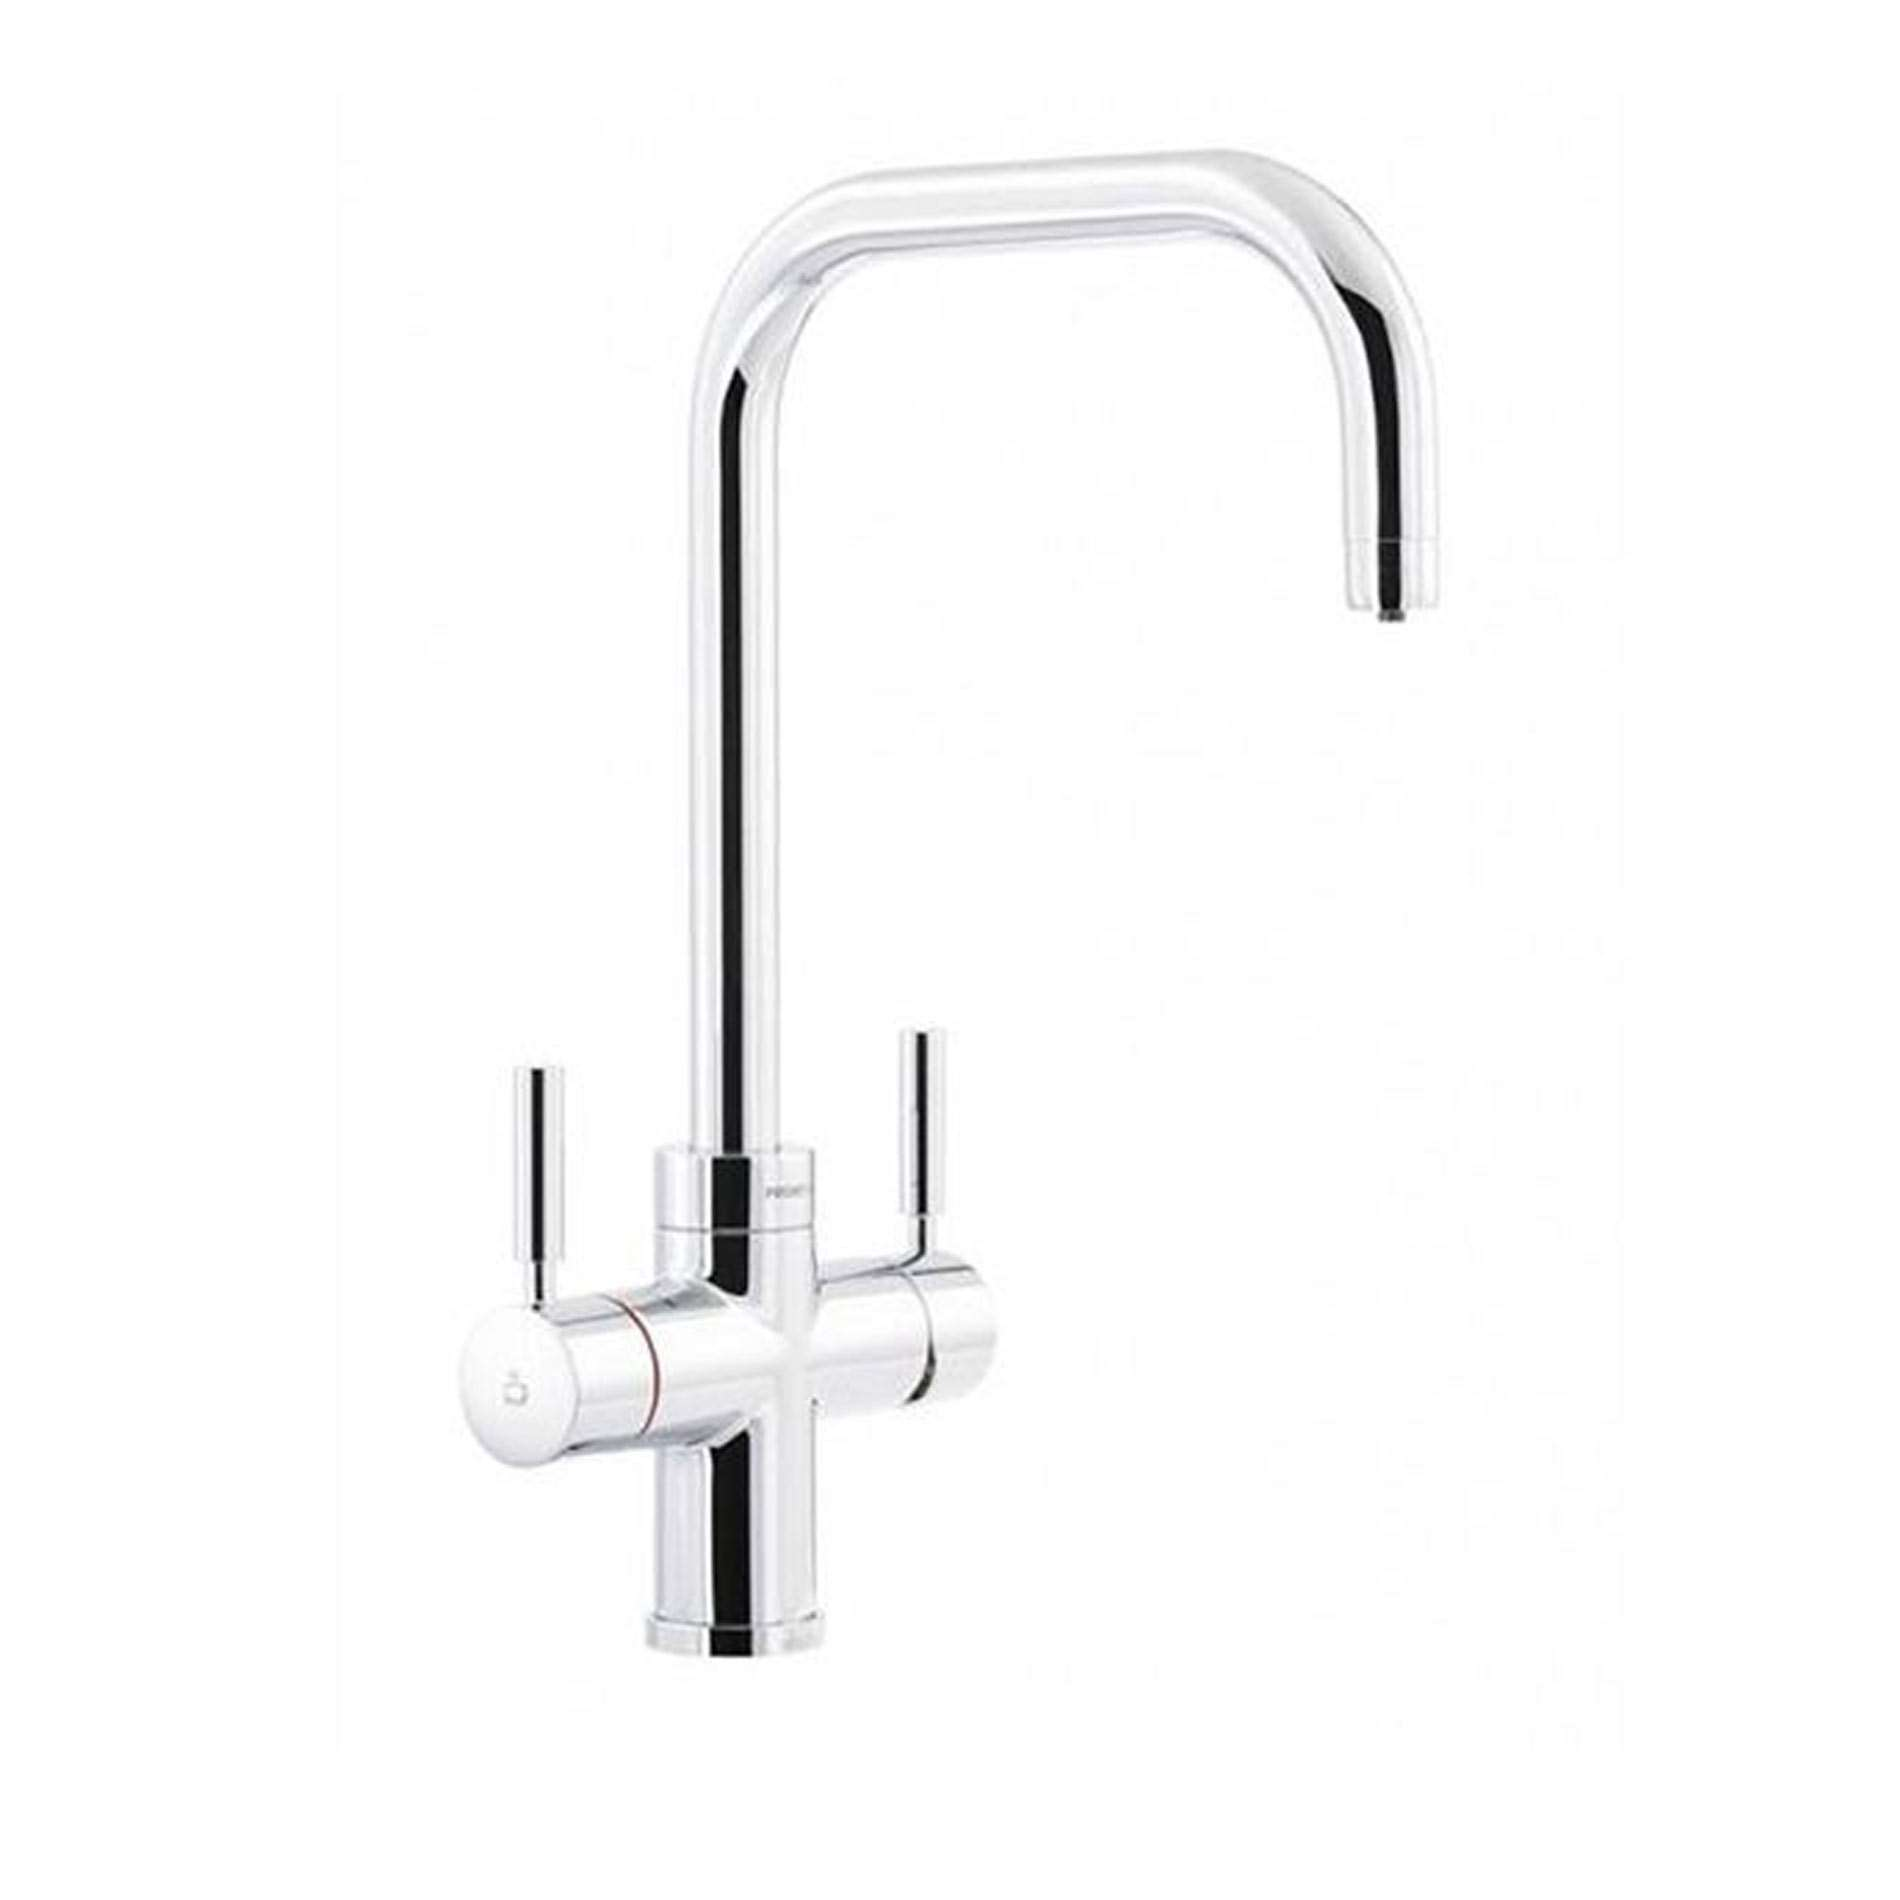 Picture of Pronteau Prostyle PT1111 Chrome Tap